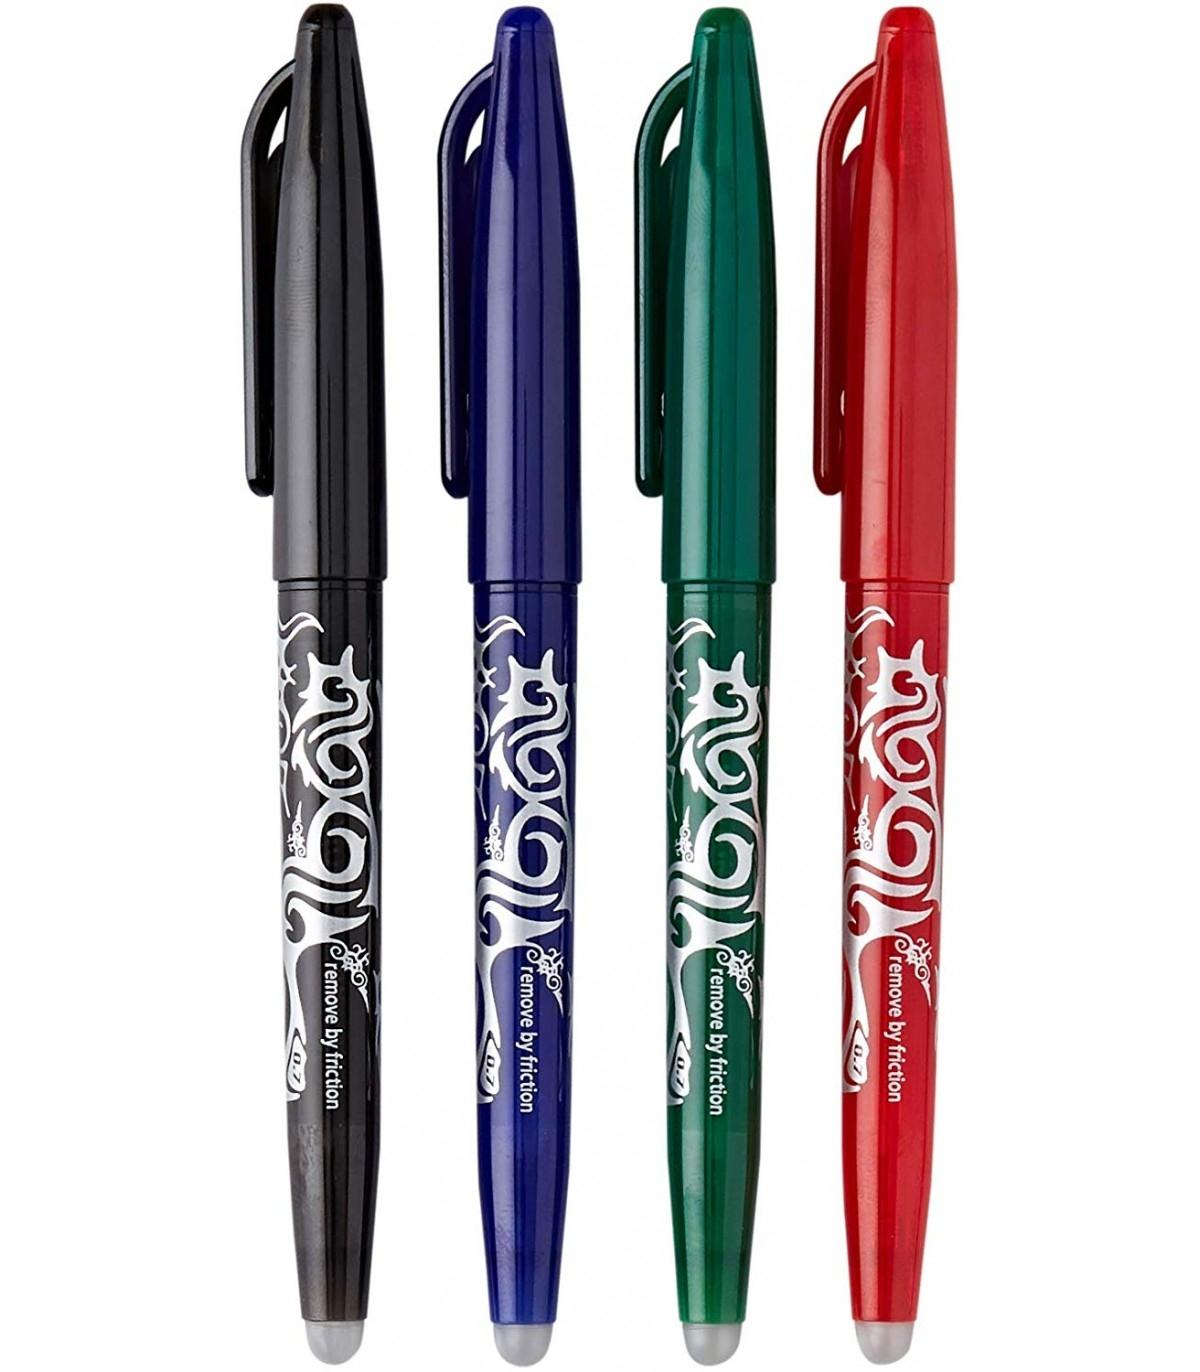 Penna cancellabile Pilot Frixion